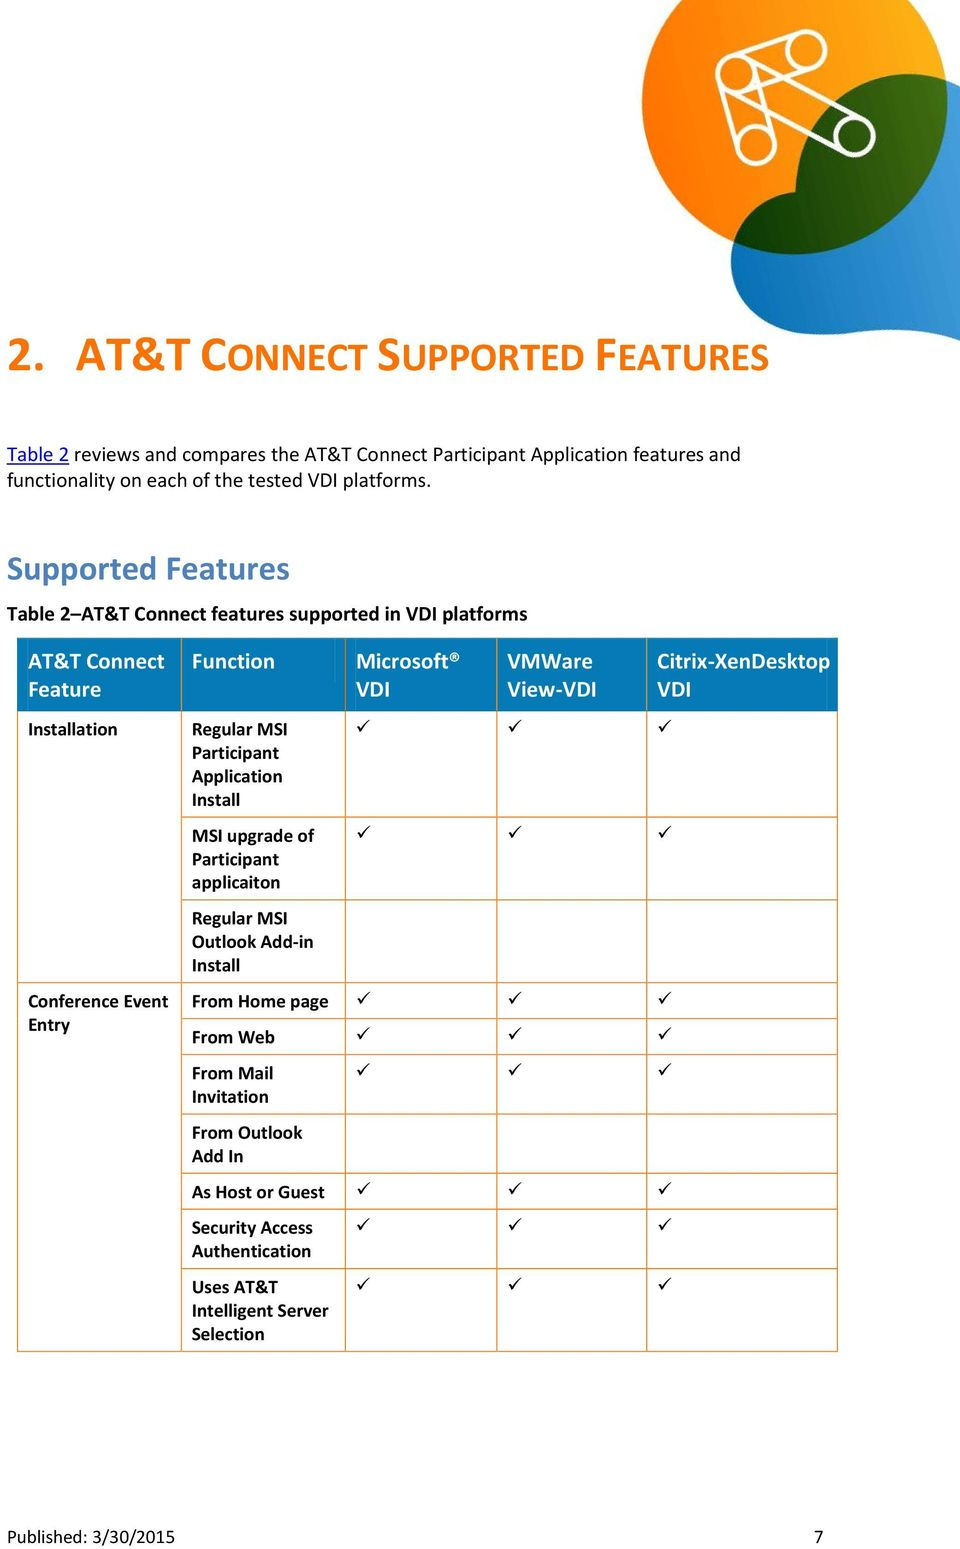 Supported Features Table 2 AT&T Connect features supported in platforms AT&T Connect Feature Installation Conference Event Entry Function Regular MSI